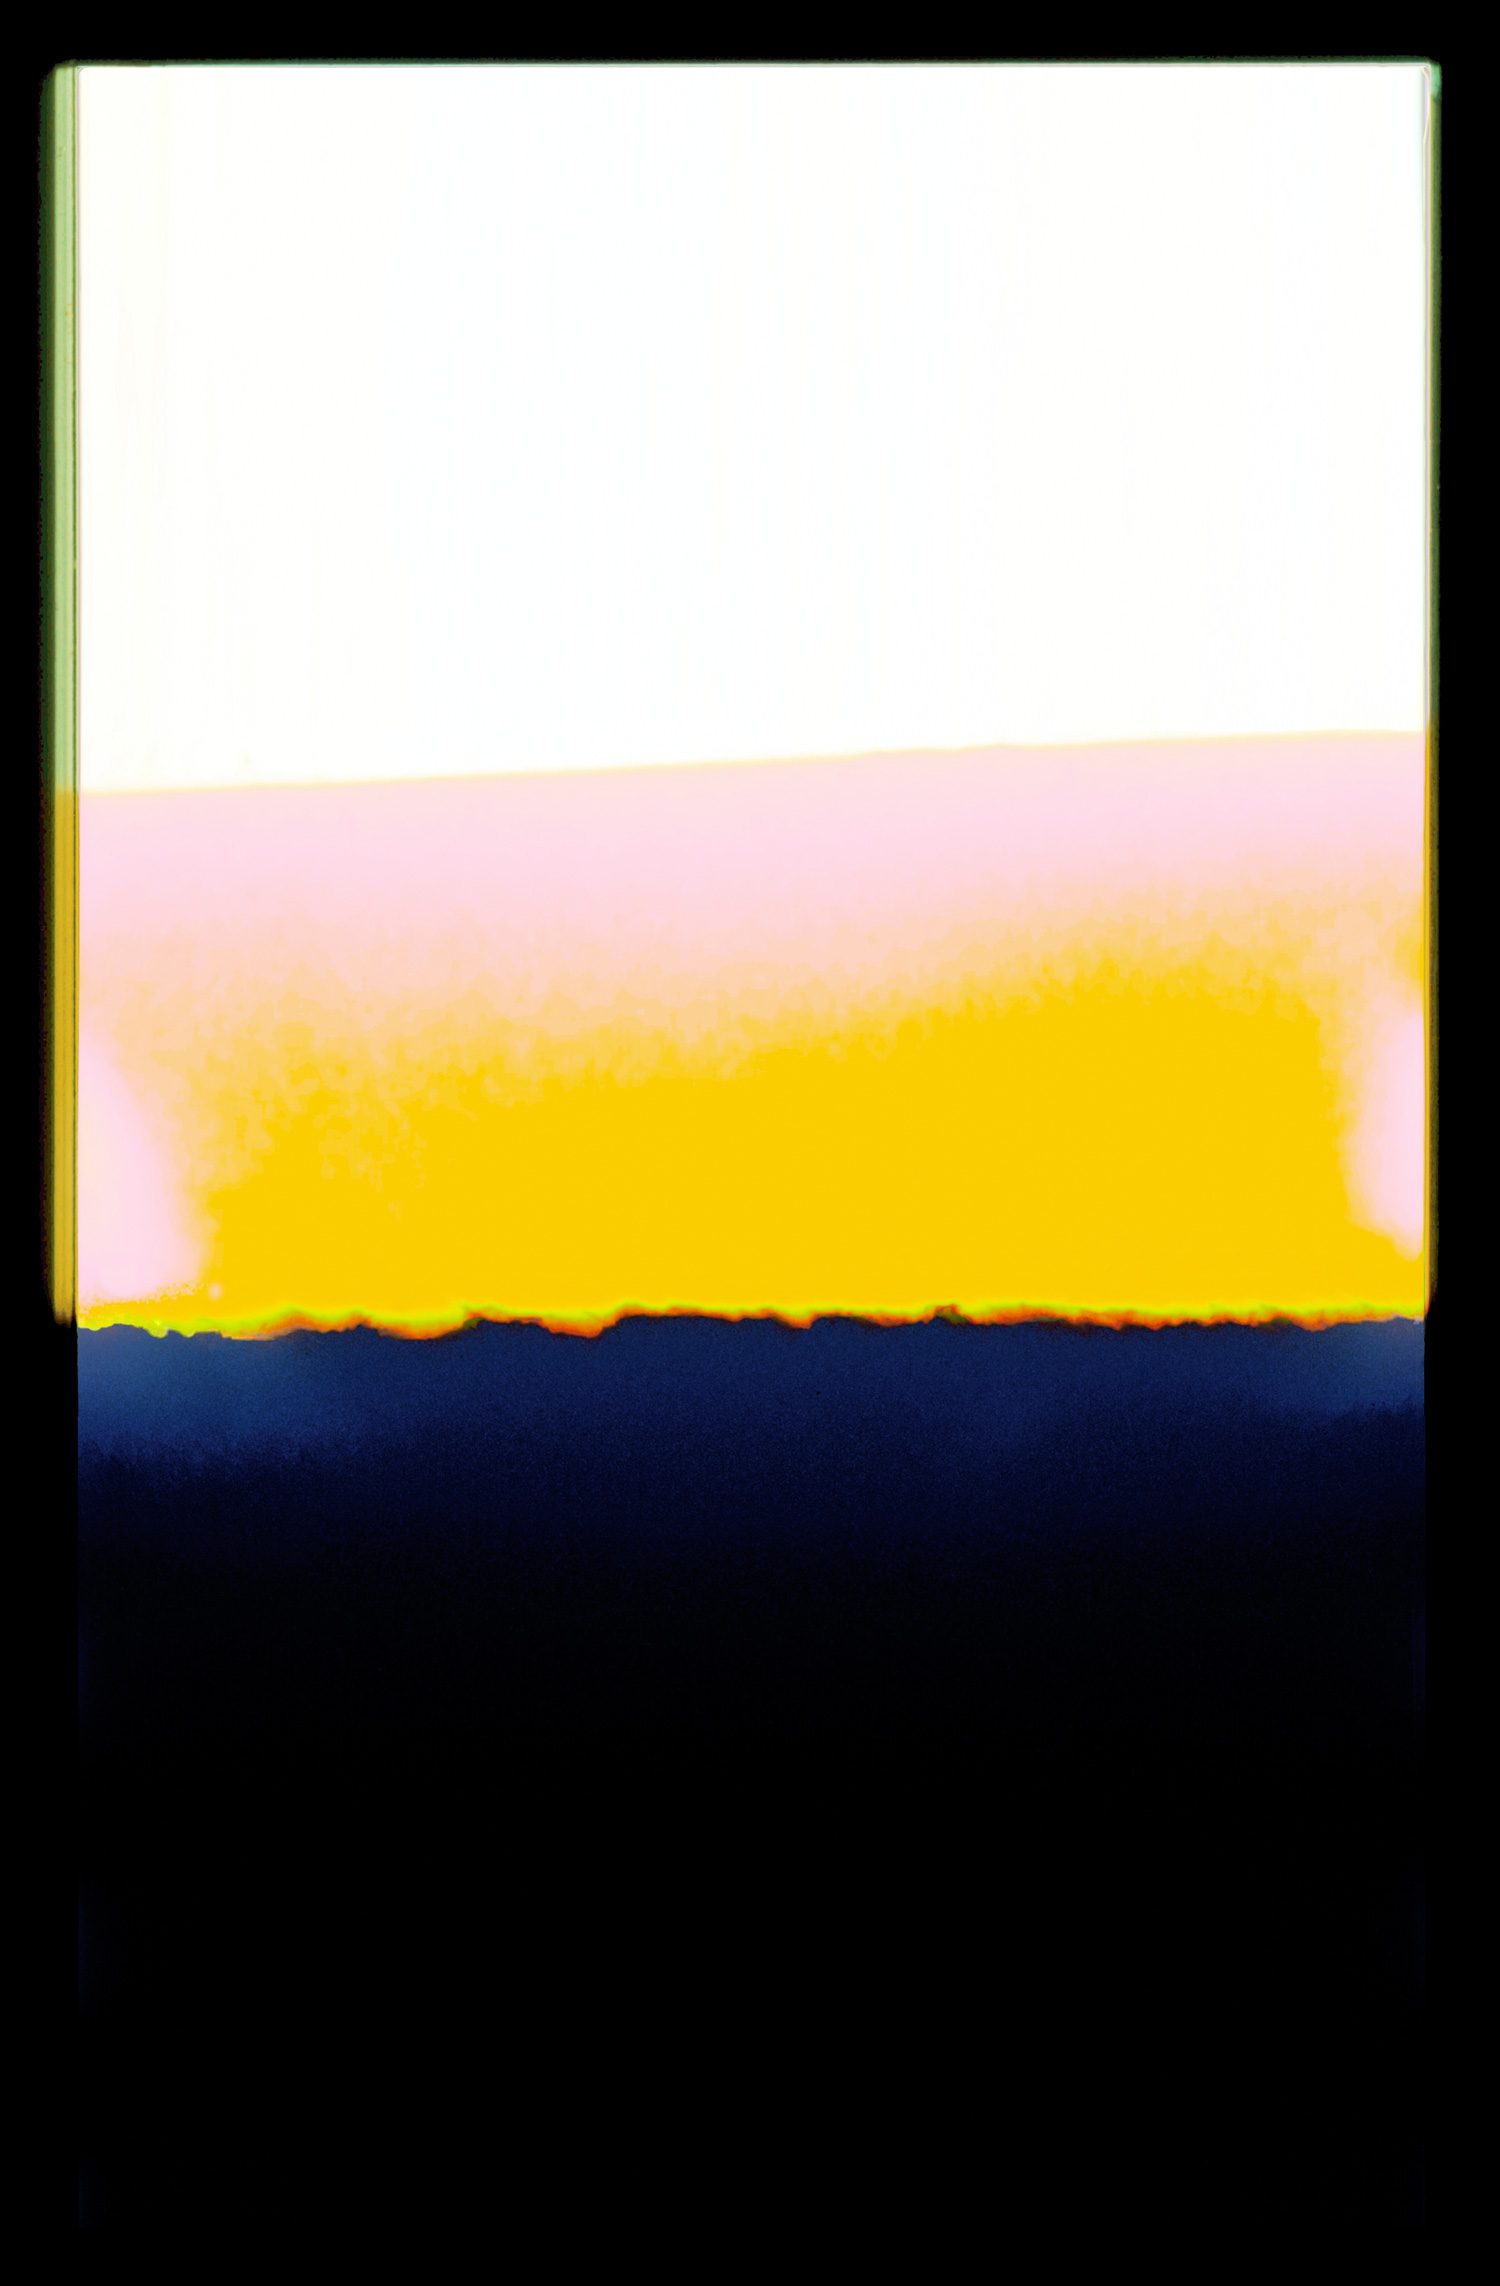 Endings - Ektachrome, No.0A. 17/05/1990